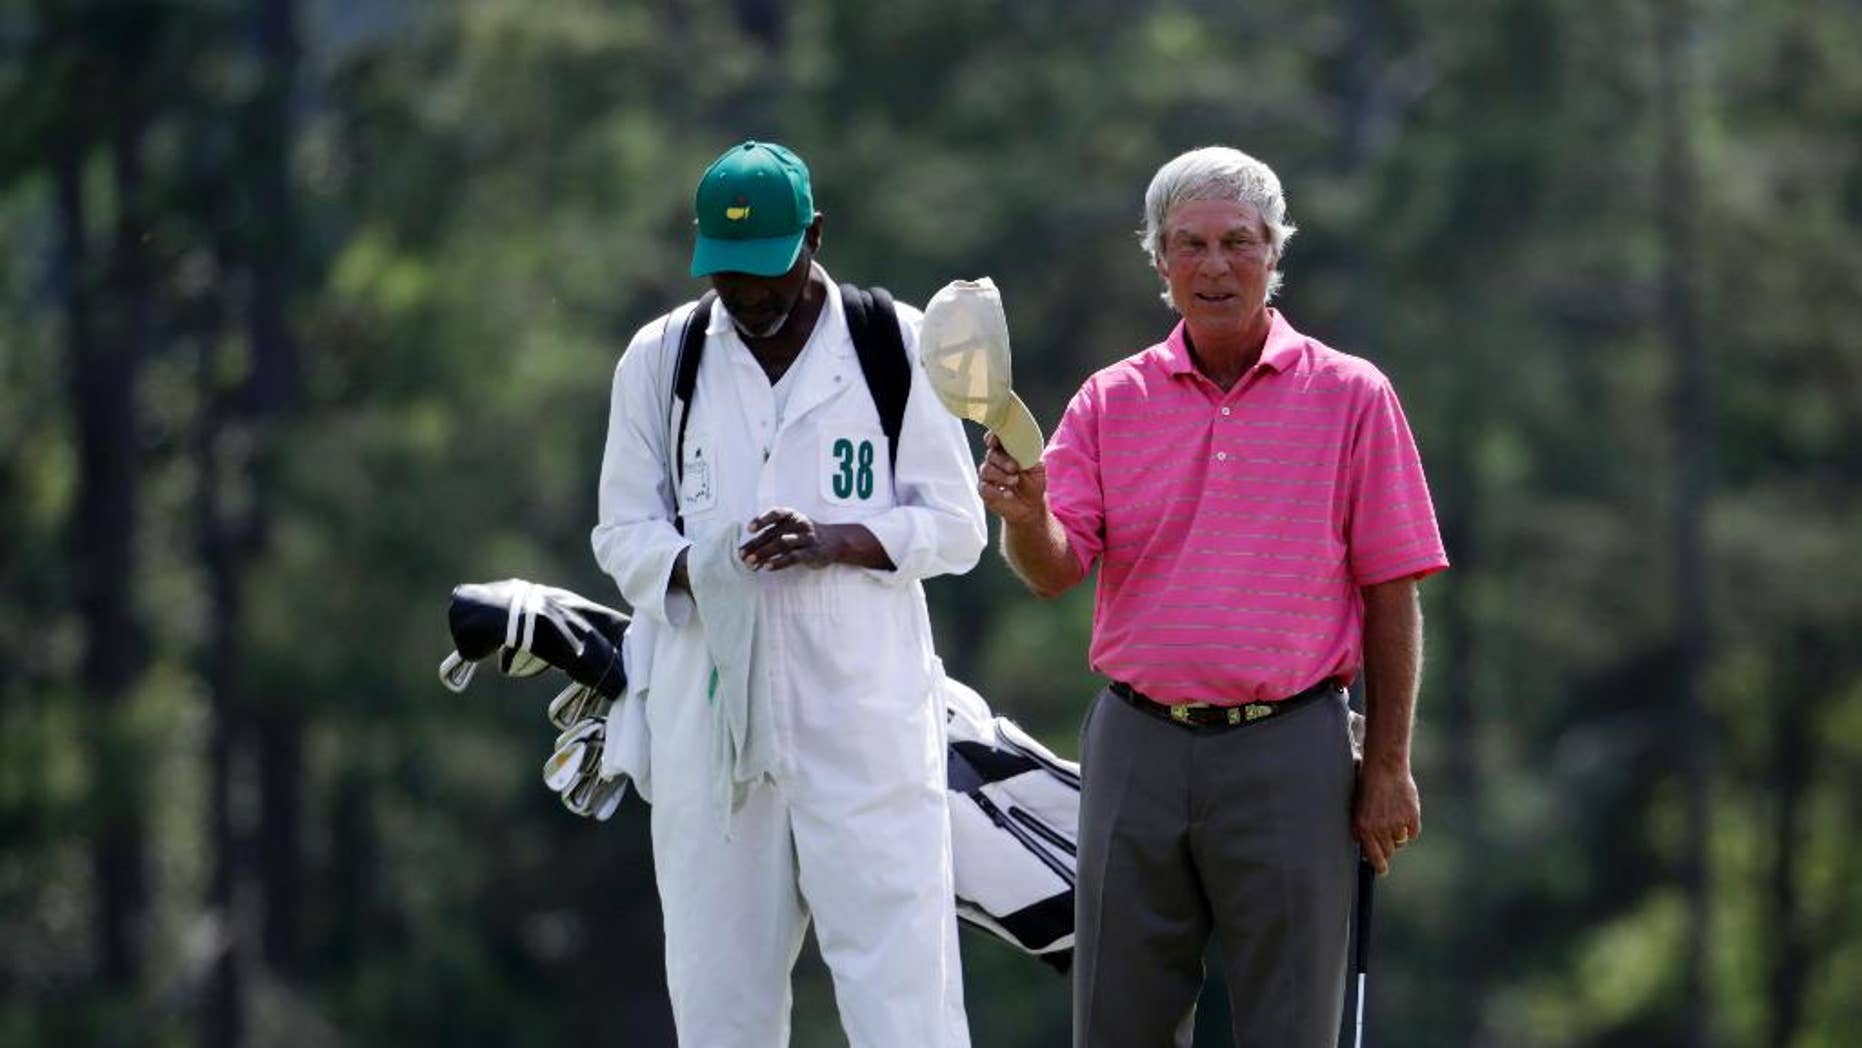 Ben Crenshaw acknowledges applause on the 18th hole during the first round of the Masters golf tournament Thursday, April 9, 2015, in Augusta, Ga. (AP Photo/Darron Cummings)